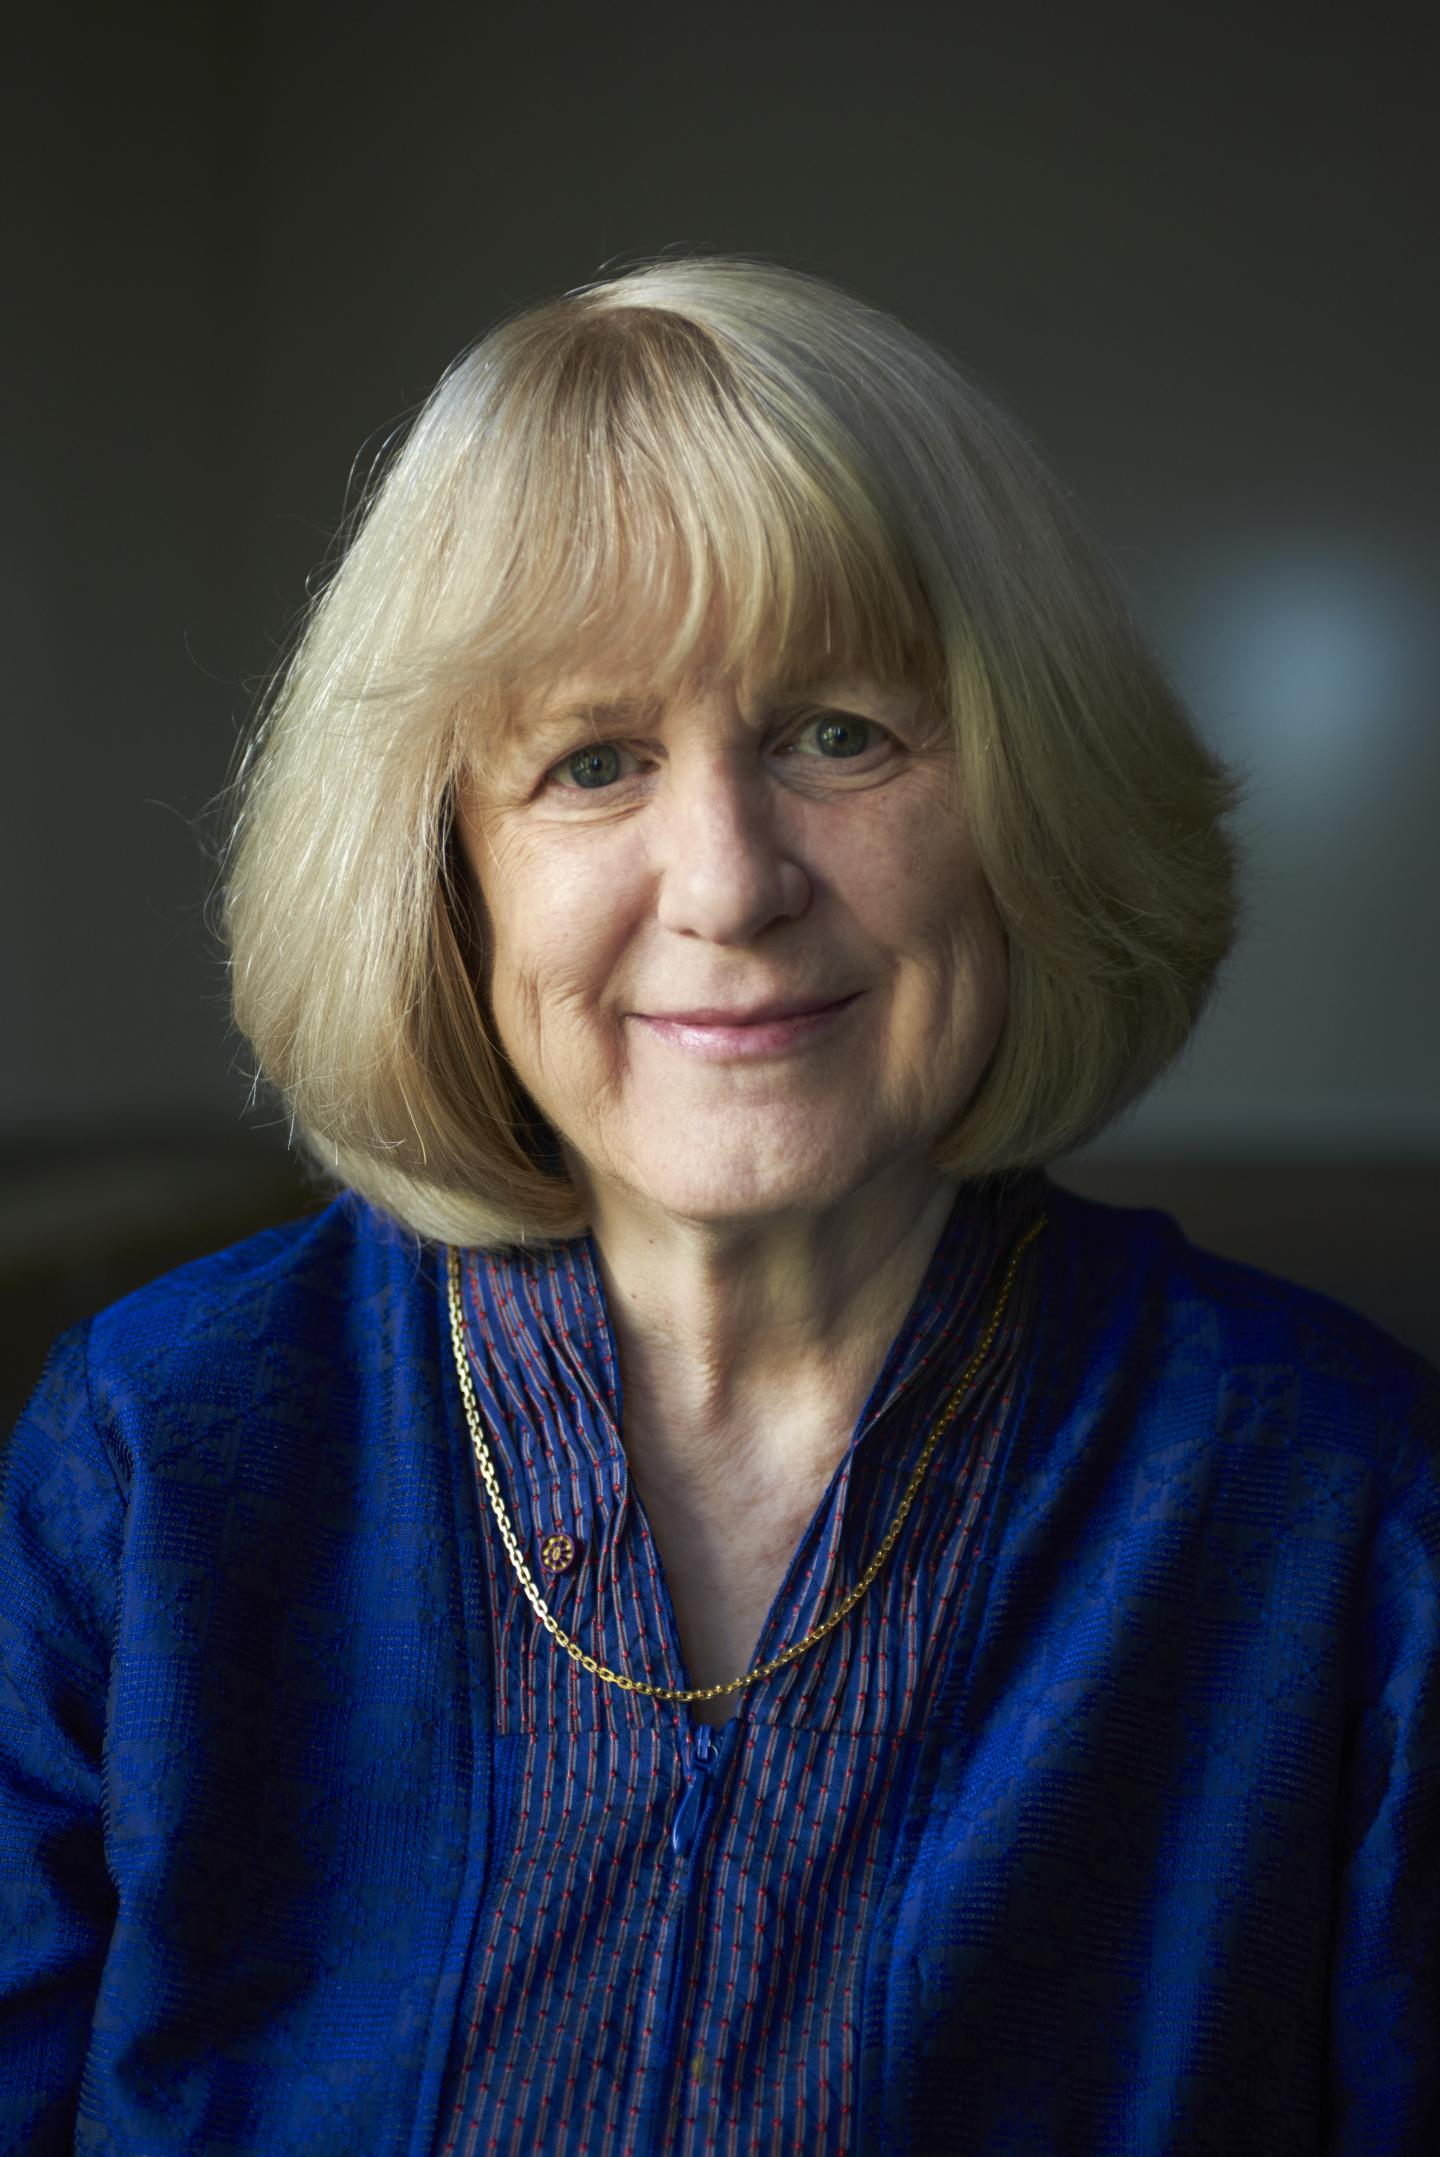 Mary-Claire King, Ph.D., Recipient of ASHG's 2018 Advocacy Award